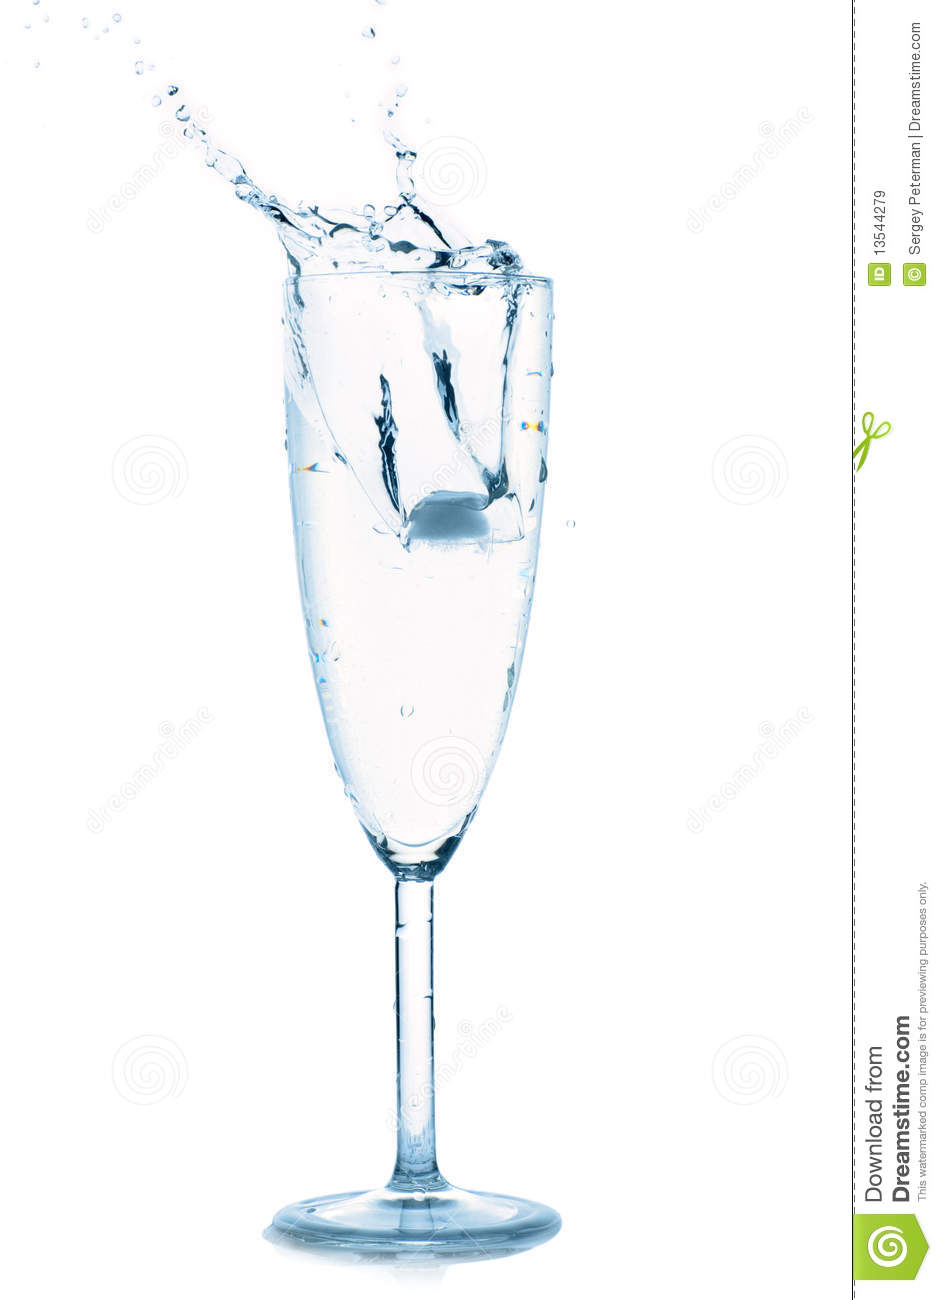 Water glass royalty free stock images image 13544279 for Water glass images